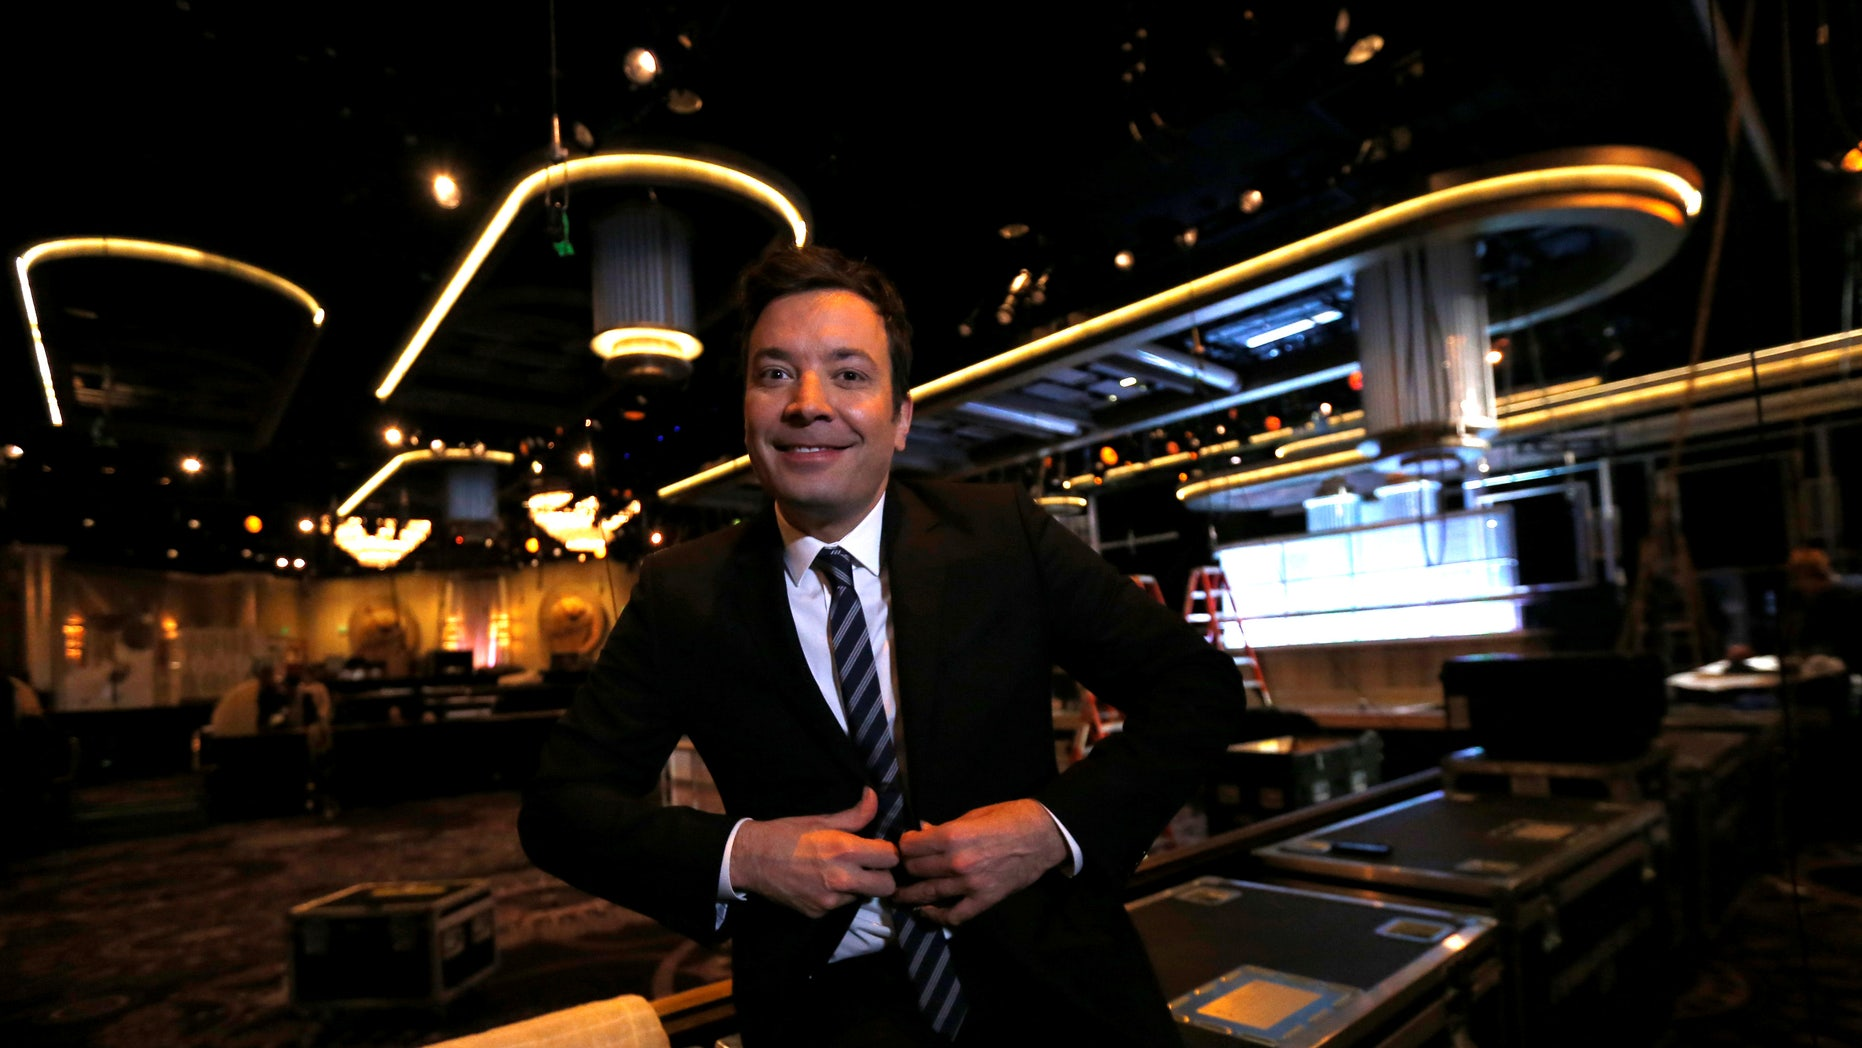 Host and comedian Jimmy Fallon poses during preparations for the 73rd Annual Golden Globe Awards in Beverly Hills, California, U.S. January 4, 2017. REUTERS/Mario Anzuoni - RTX2XK3U